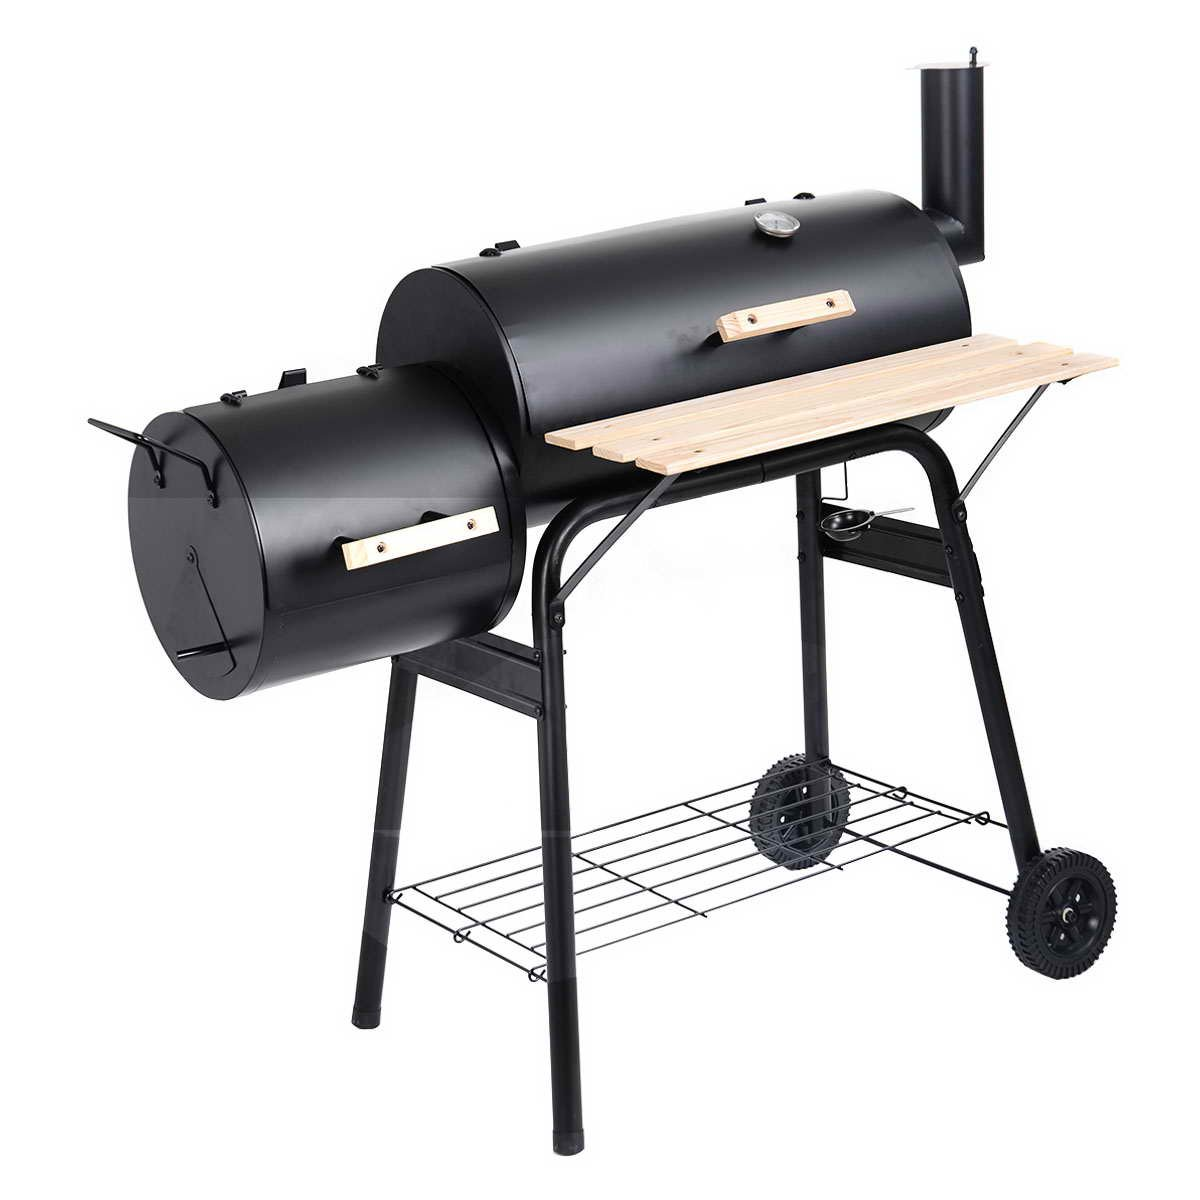 amazon com safstar outdoor bbq grill charcoal barbecue pit patio